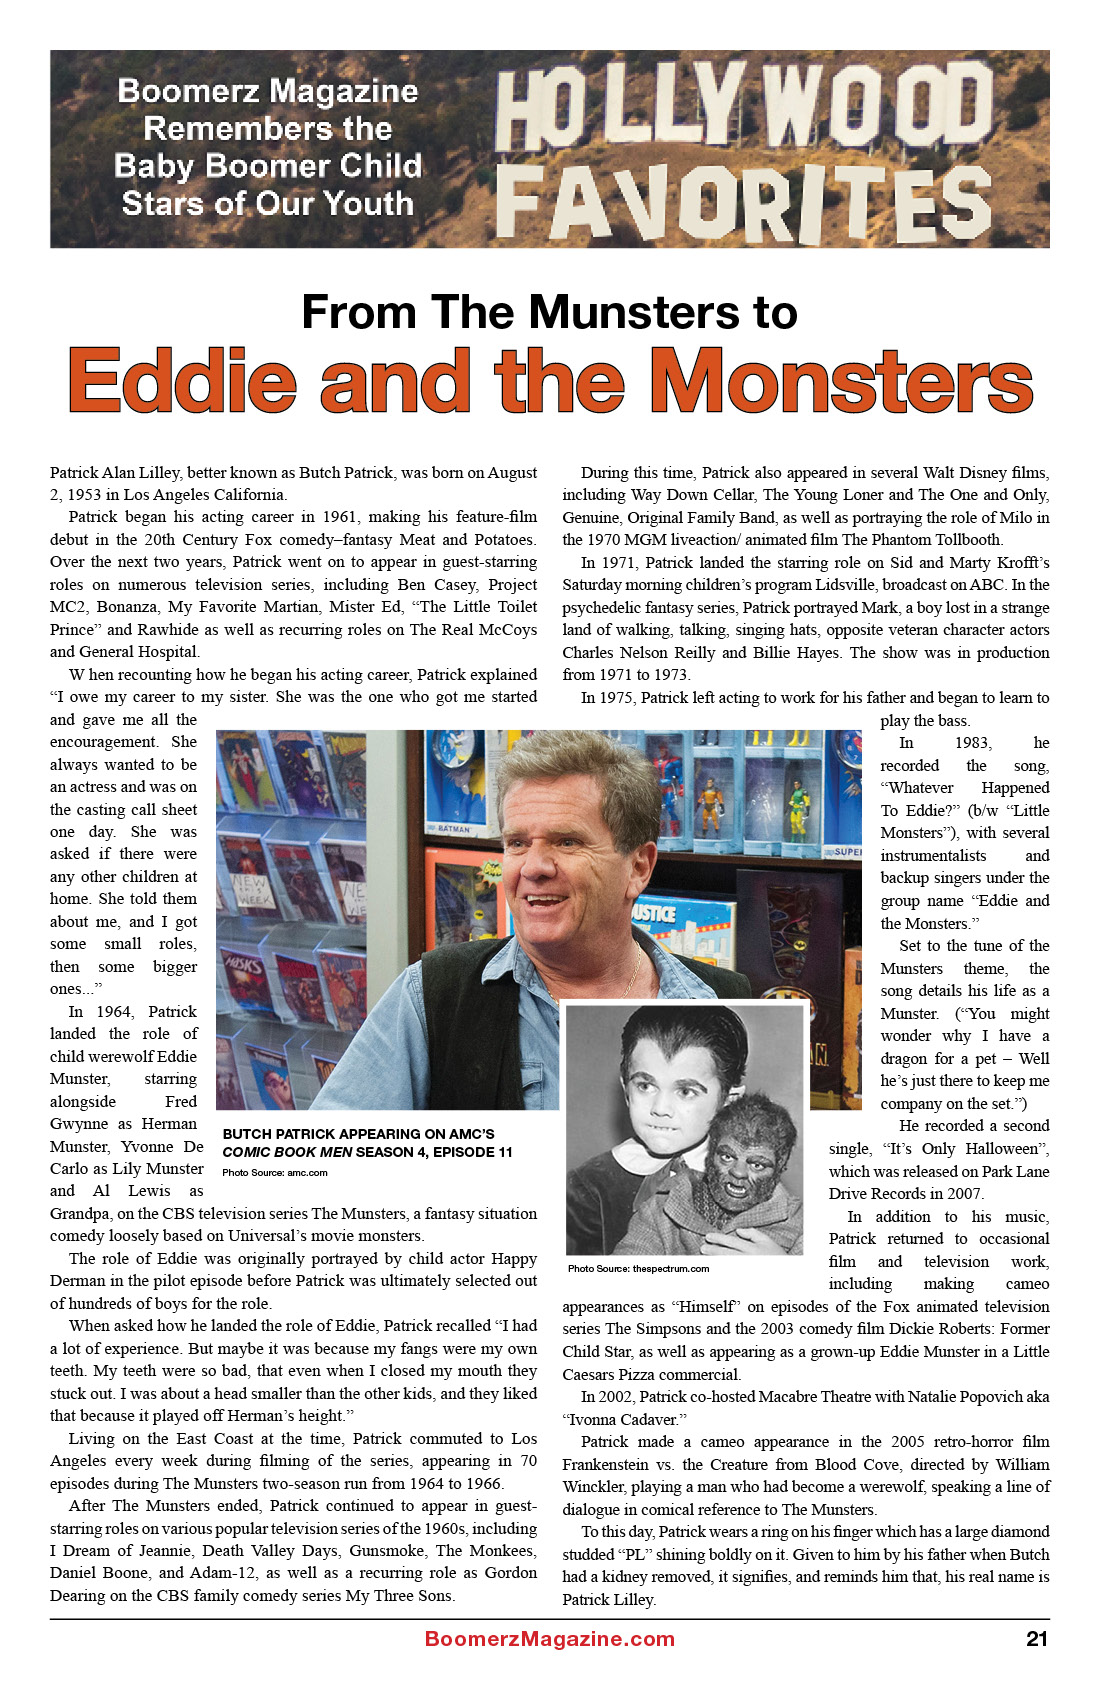 2018 October Boomerz Magazine Page 21 Hollywood Favorites Eddie and the Monsters